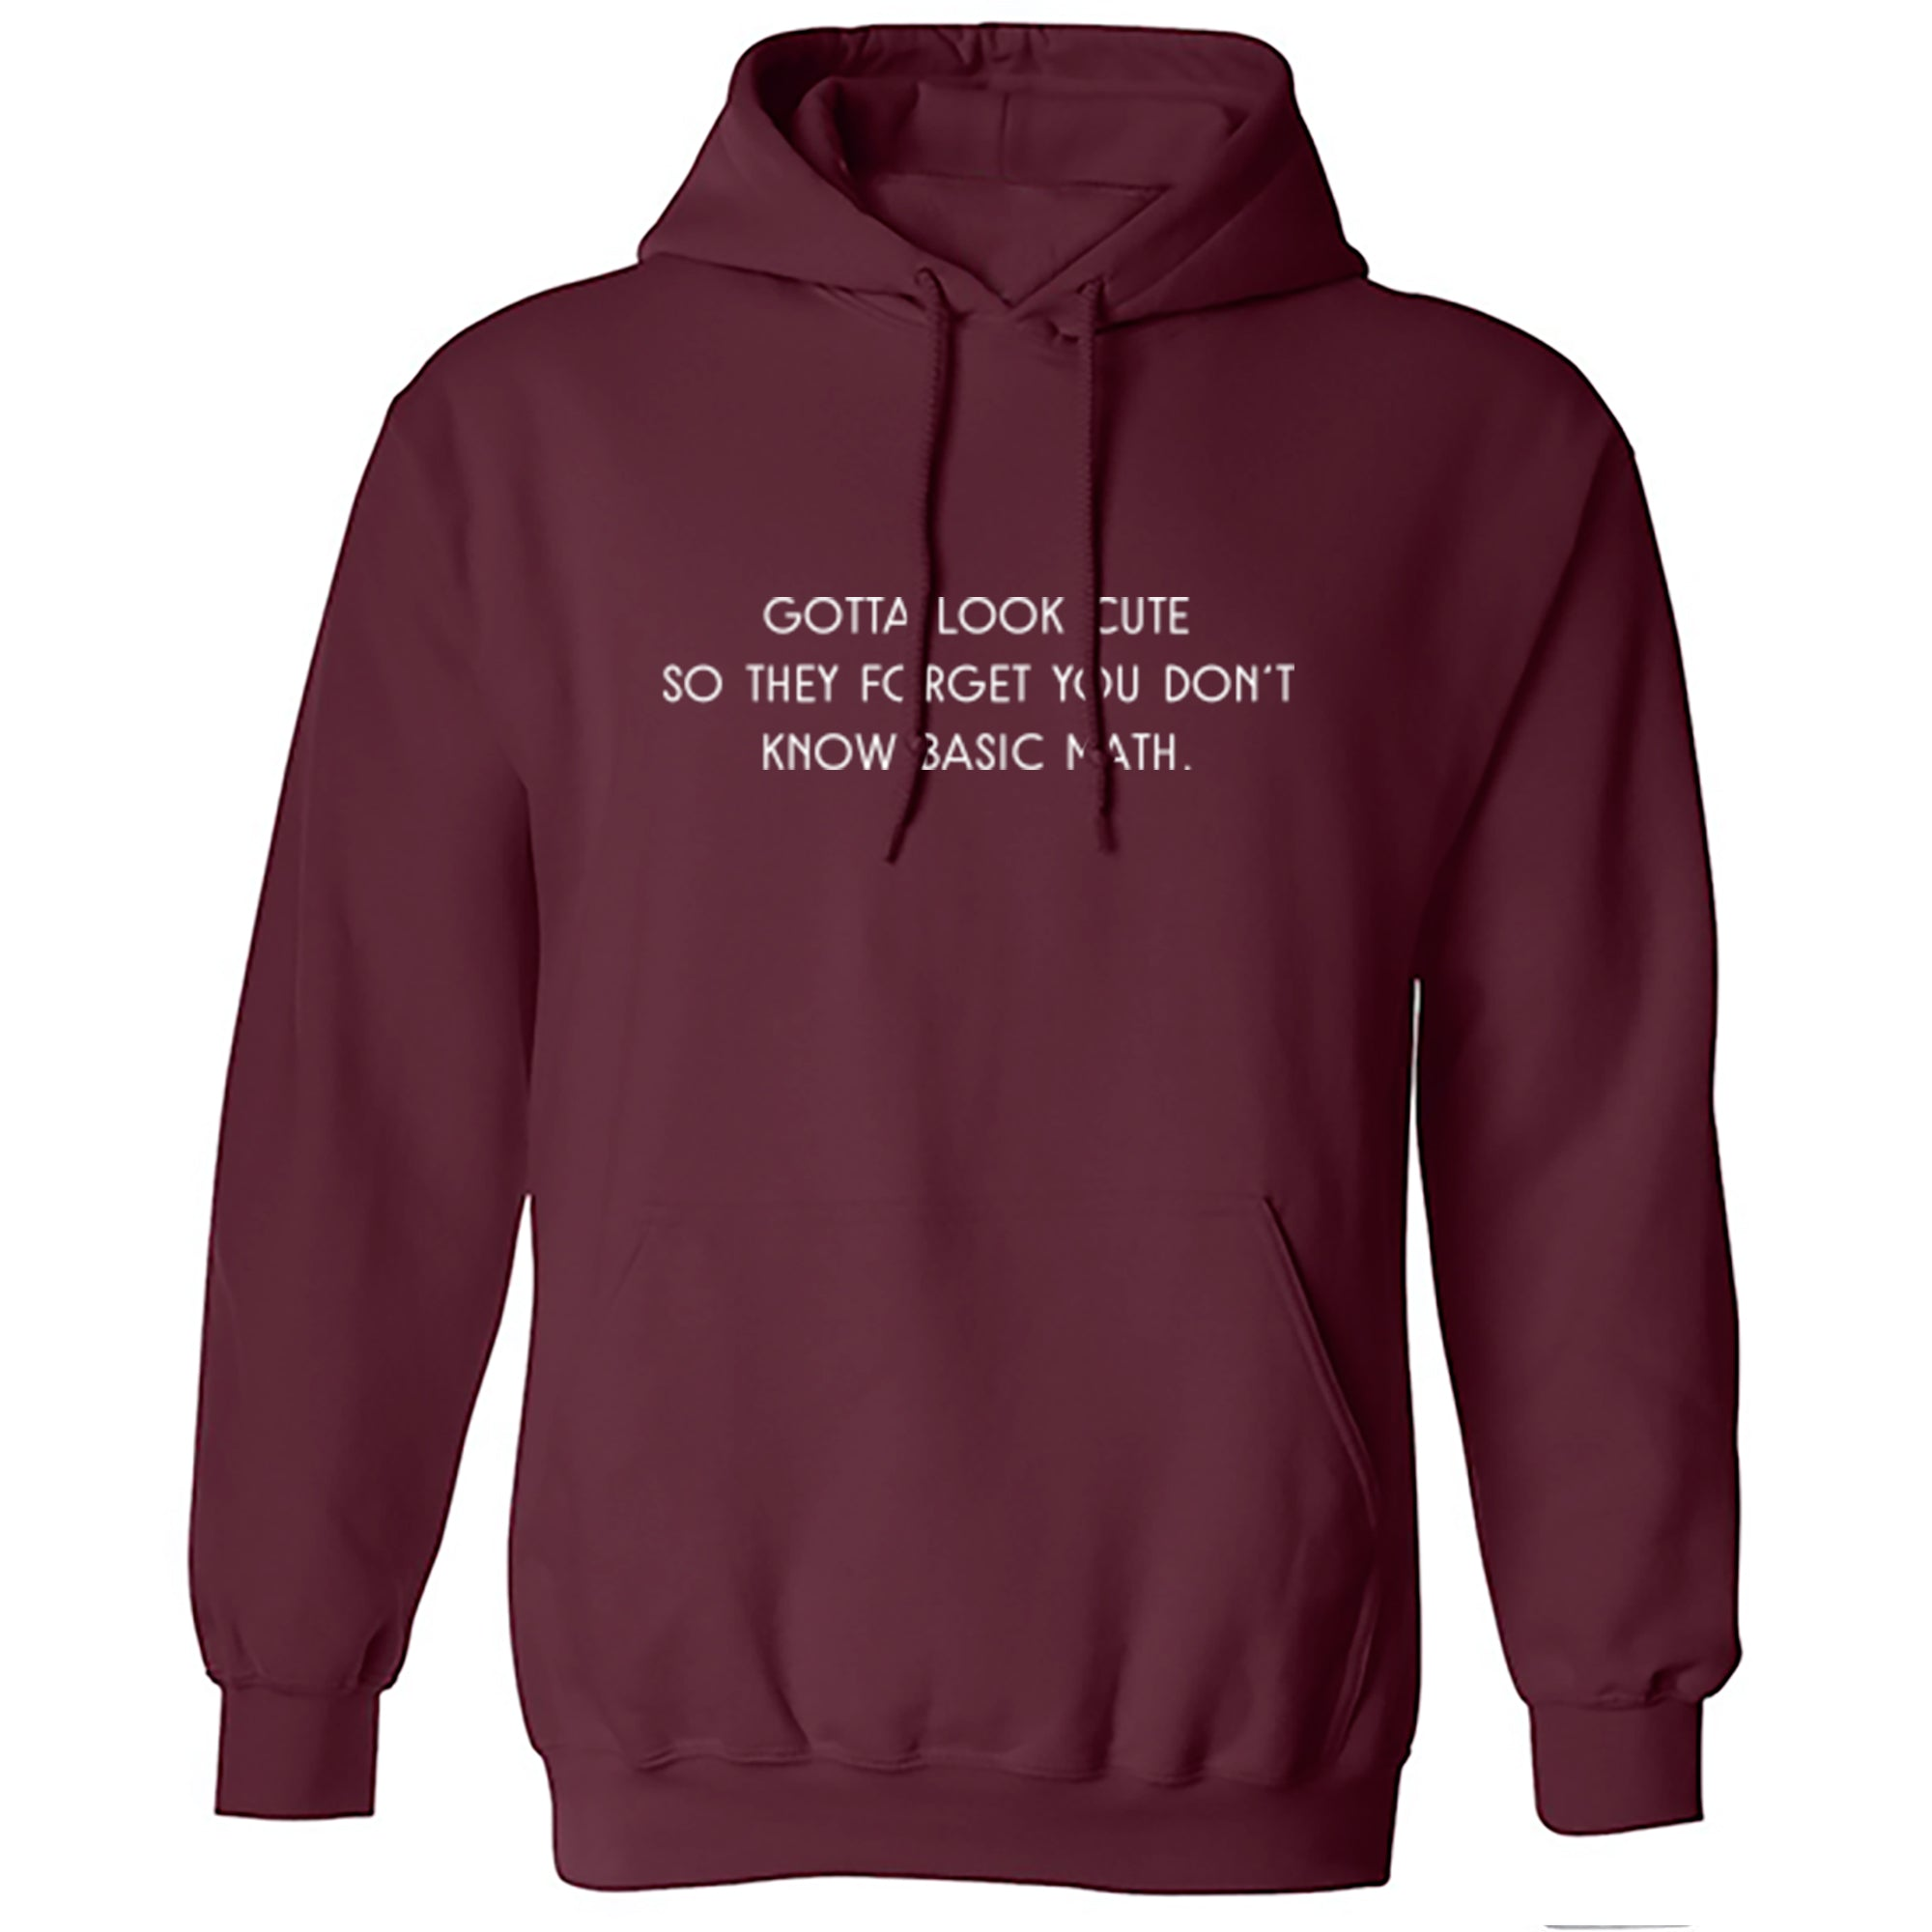 Gotta Look Cute So They Forget You Don't Know Basic Math Unisex Hoodie S1117 - Illustrated Identity Ltd.